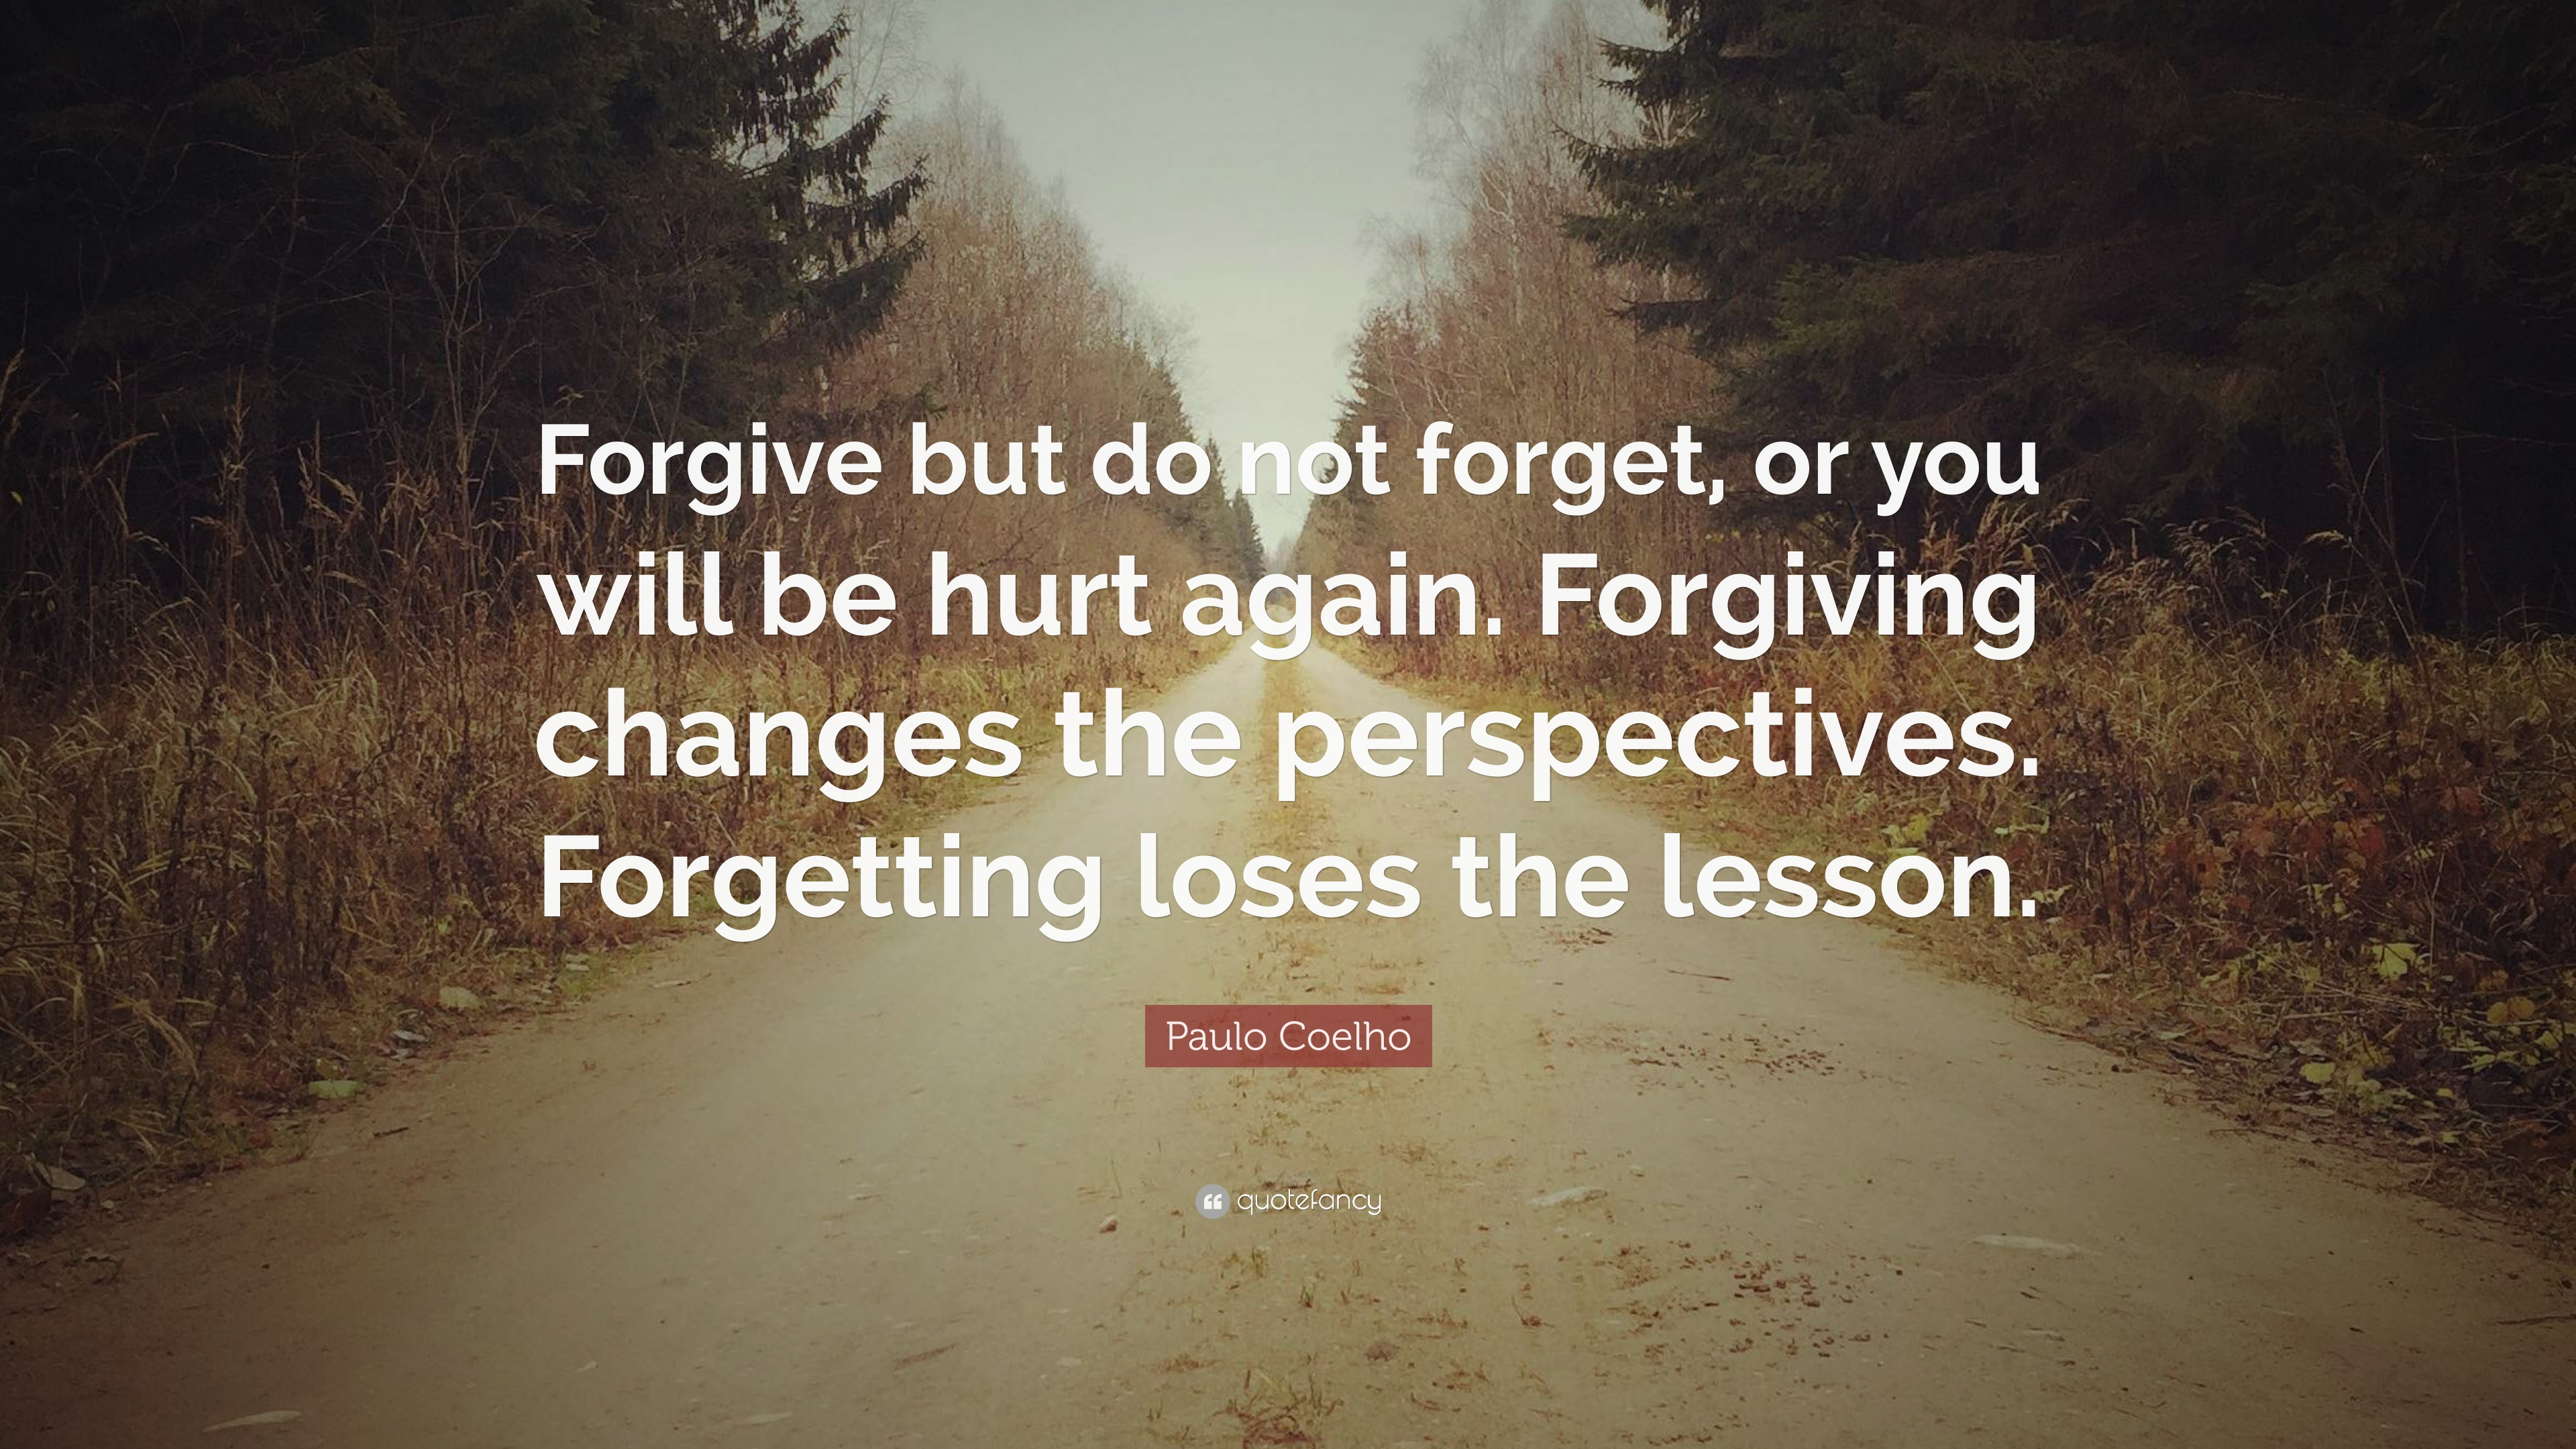 Paulo Coelho Quote Forgive But Do Not Forget Or You Will Be Hurt